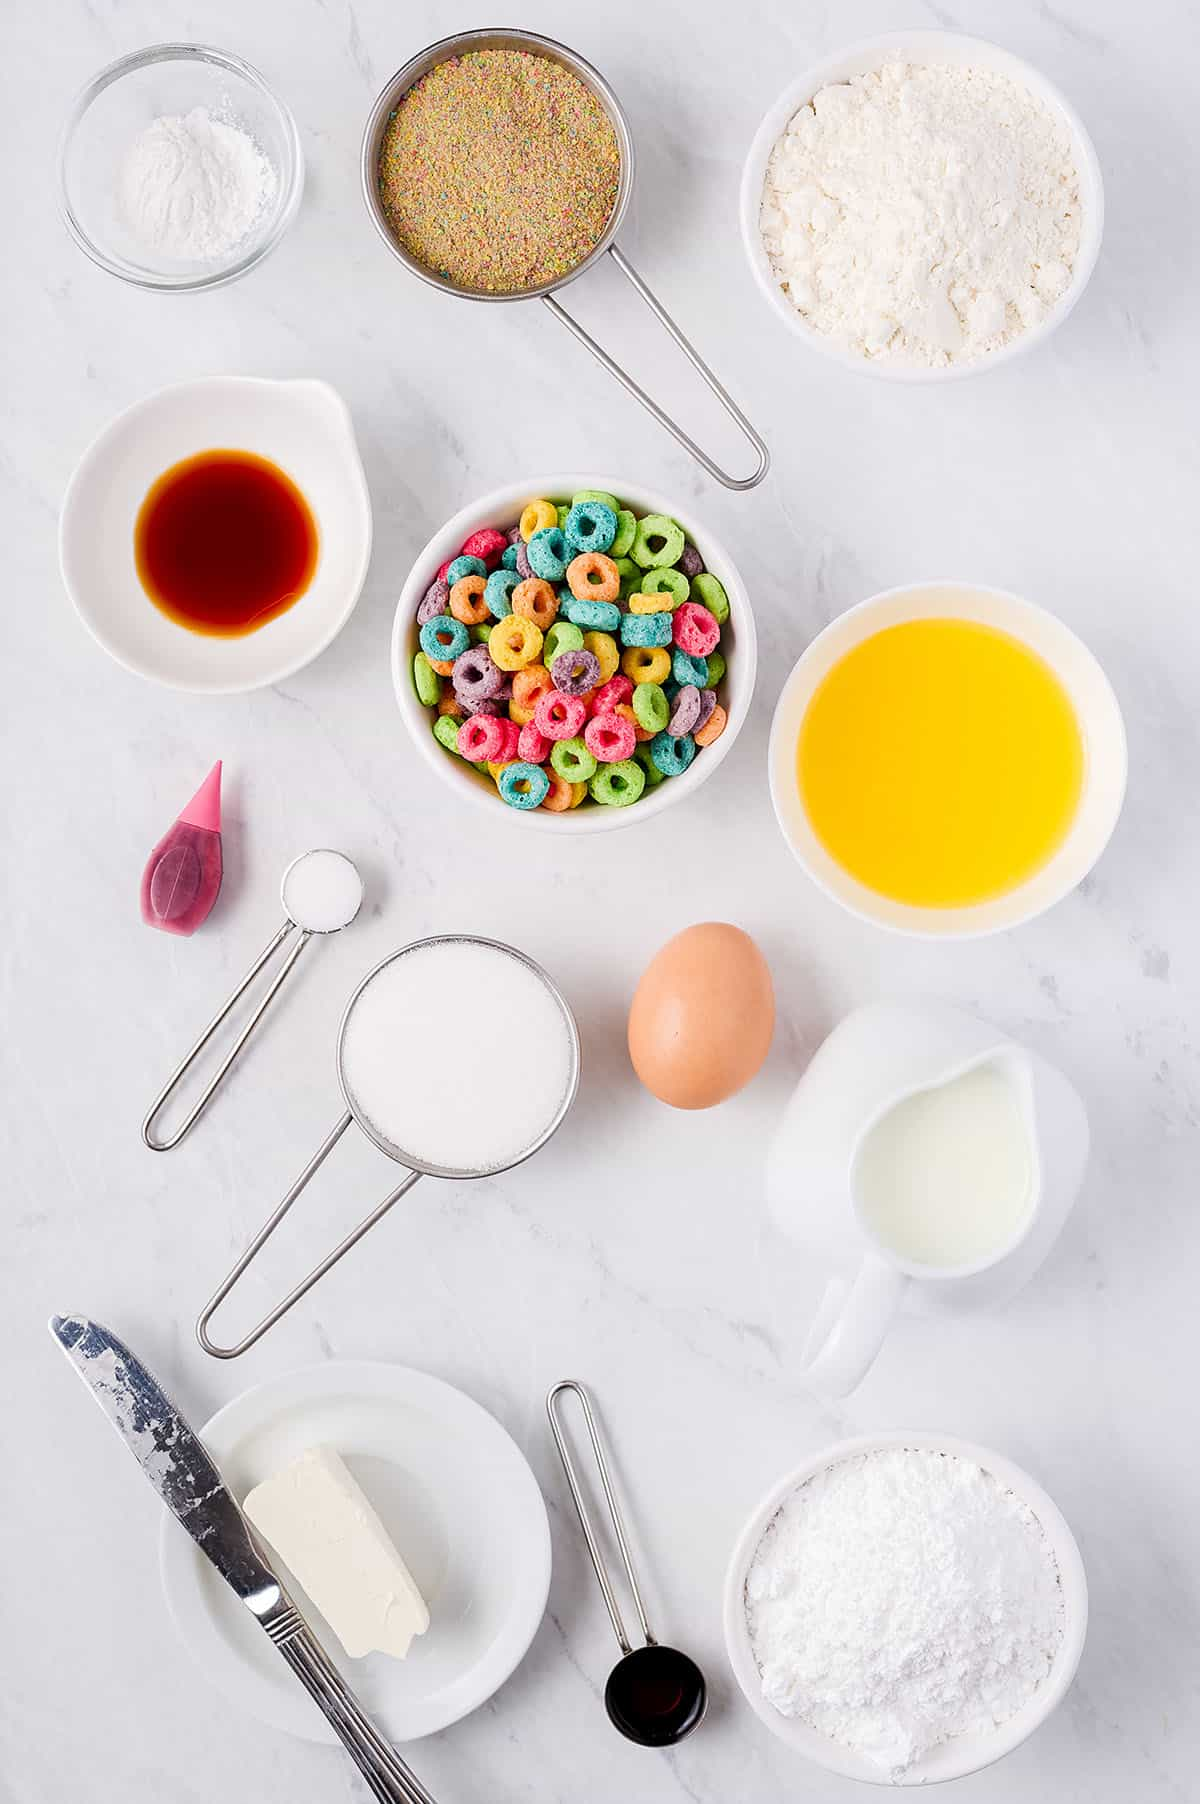 ingredients for Fruit Loop donuts on white counter.